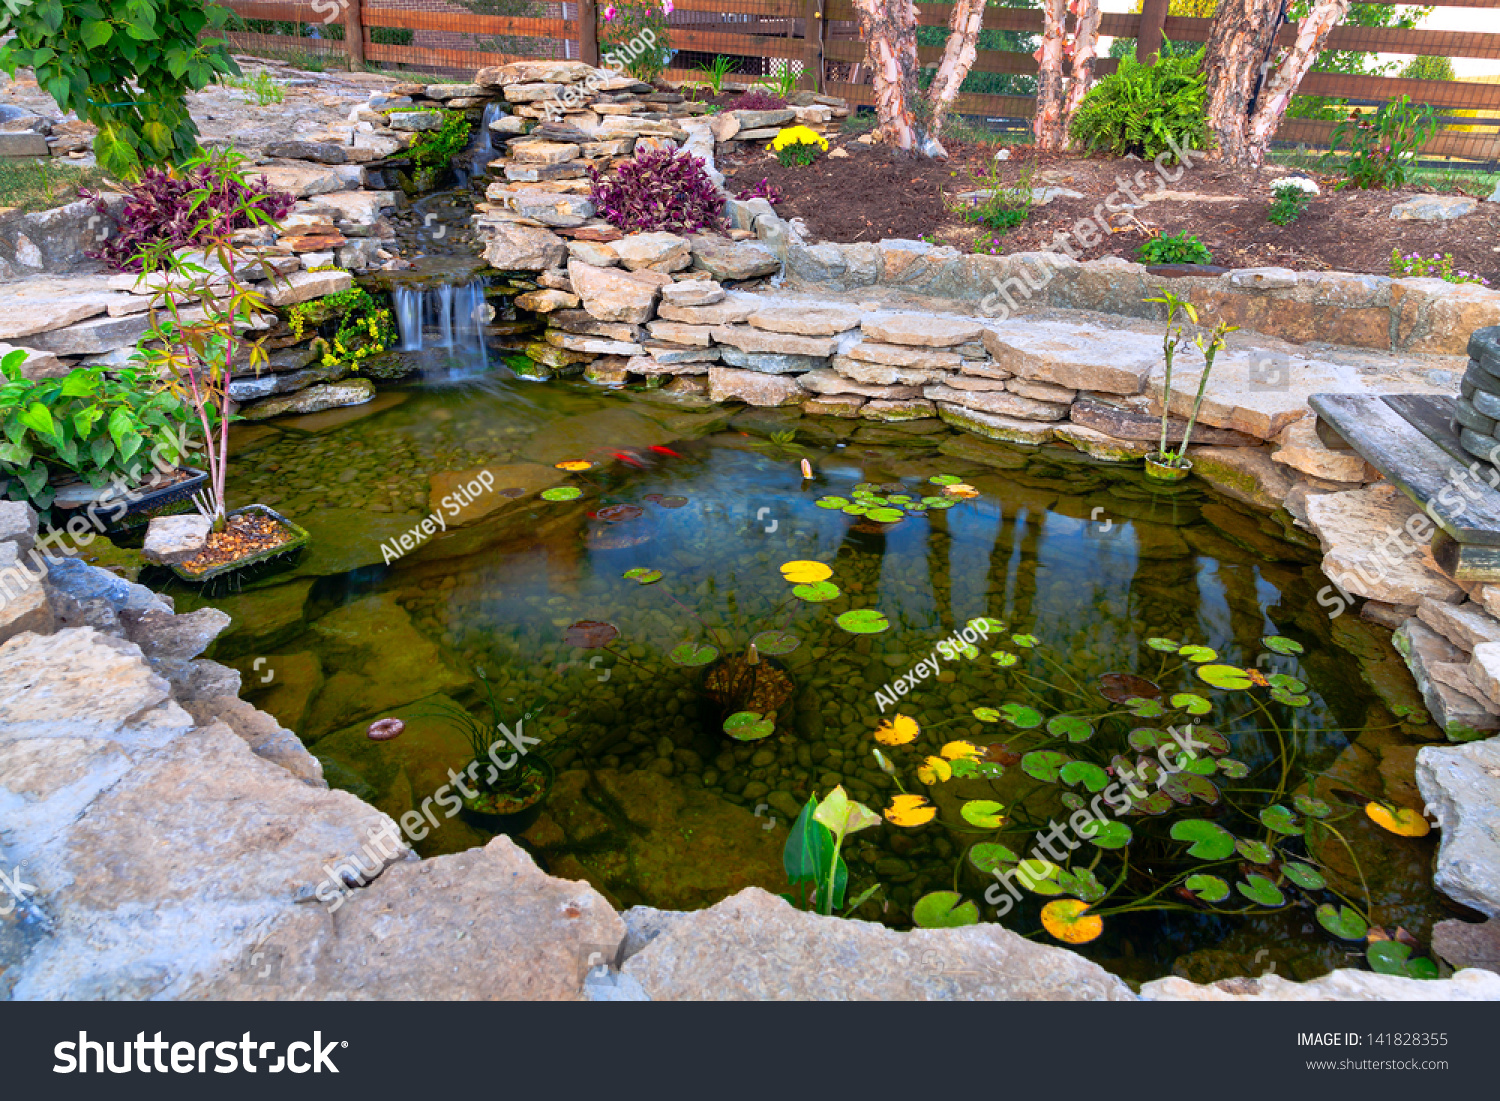 Decorative Koi Pond Garden Stock Photo 141828355